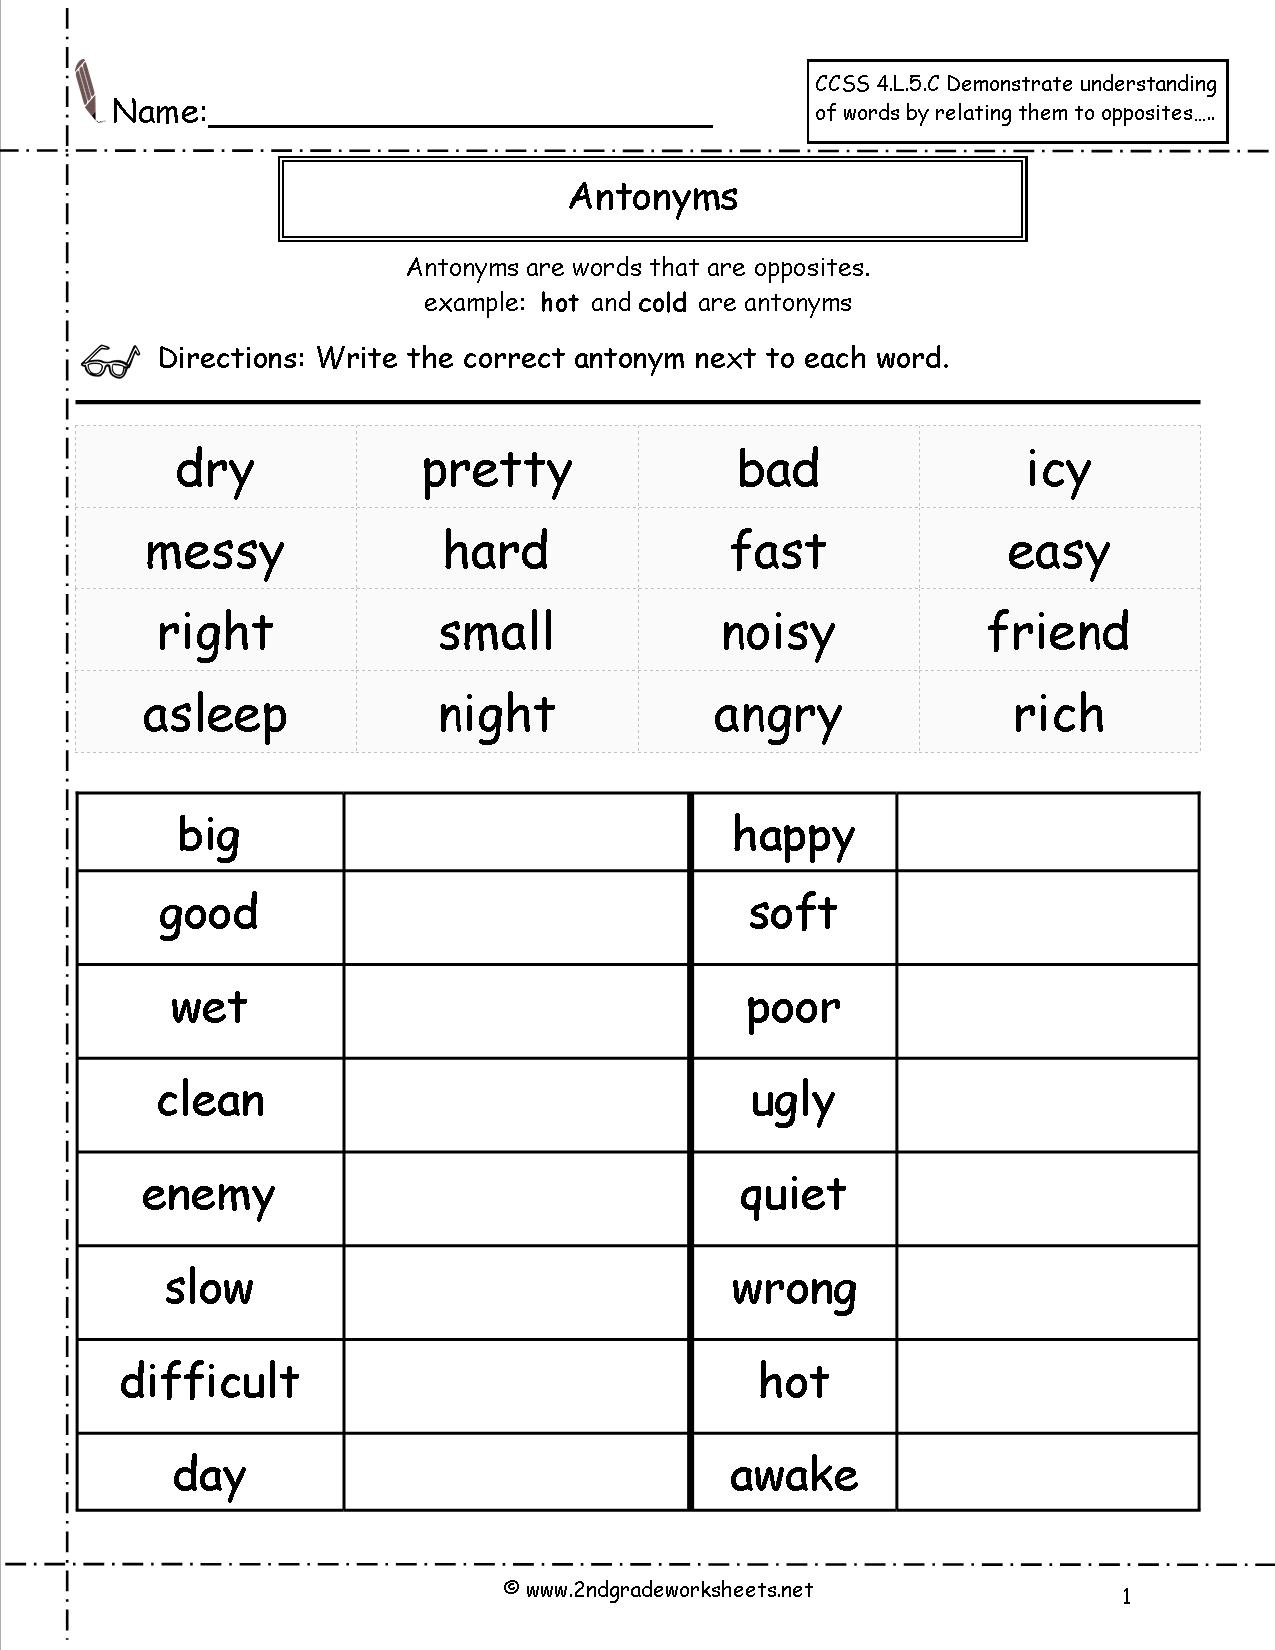 19 Best Images Of Title Page For Second Grade Worksheet